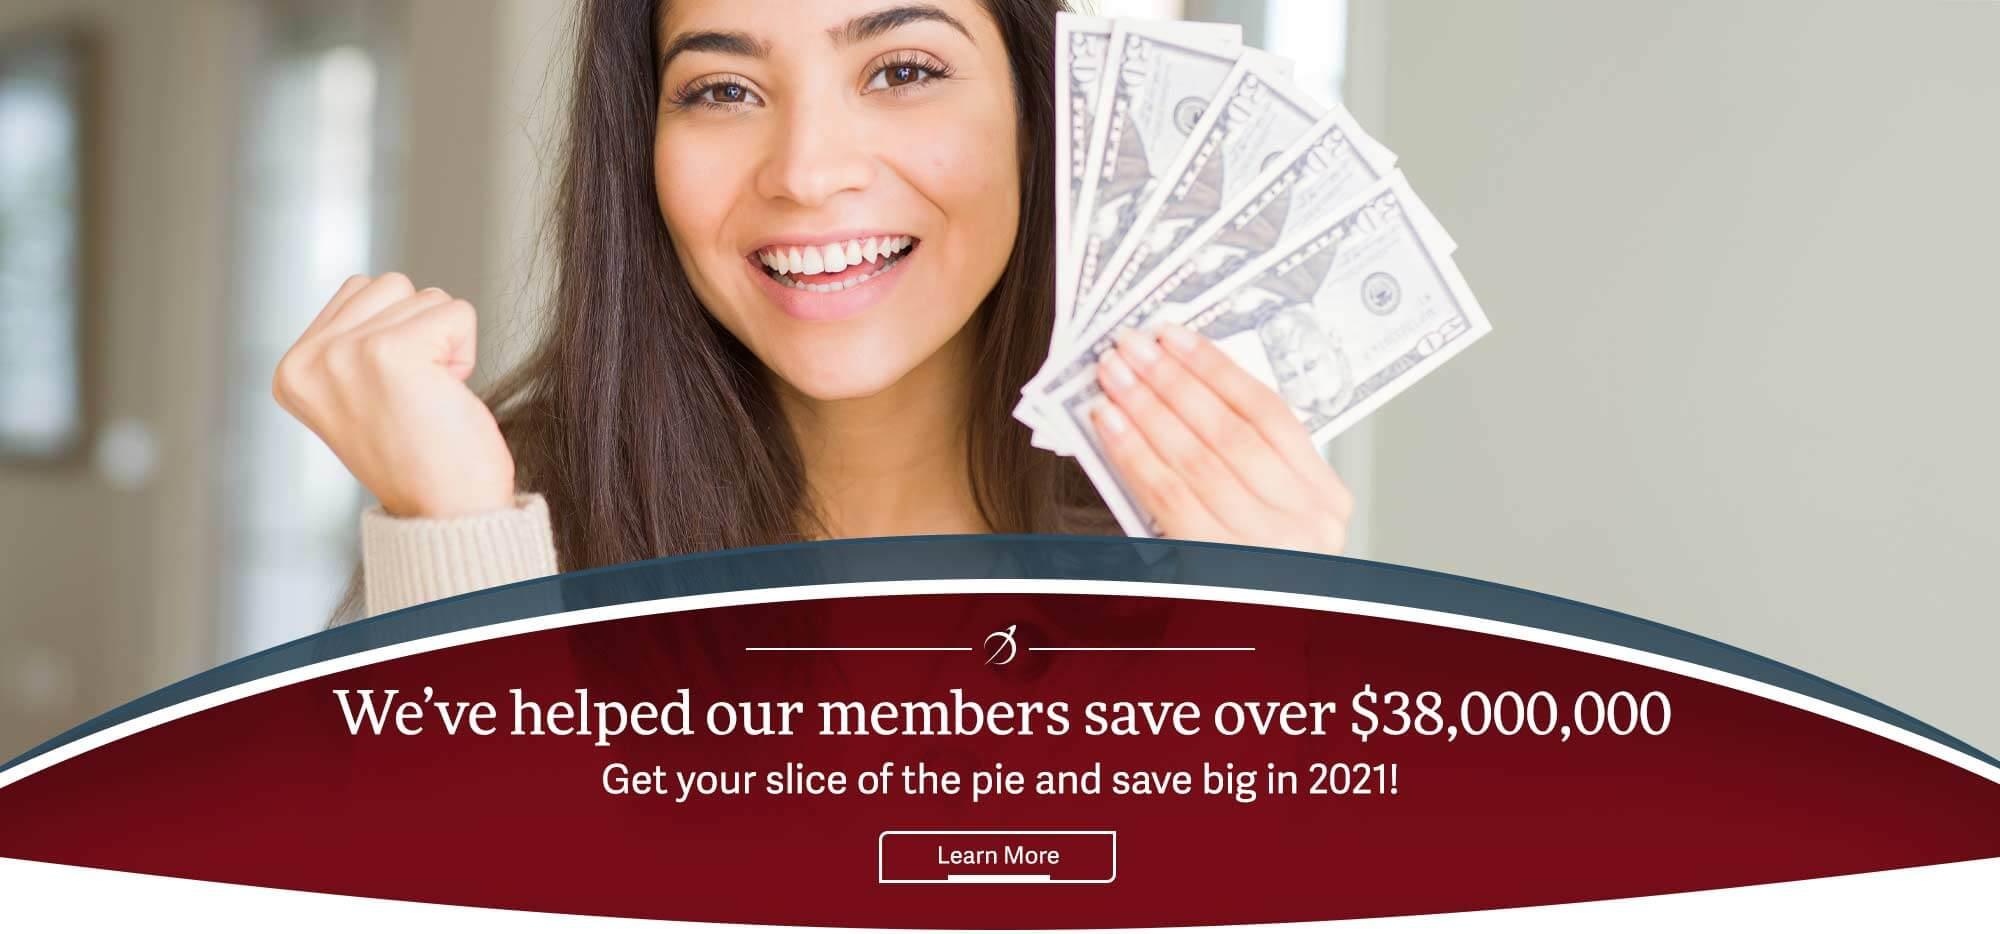 We've helped our members save over $38,000,000 Get your slice of the pie and save big in 2021! Learn More